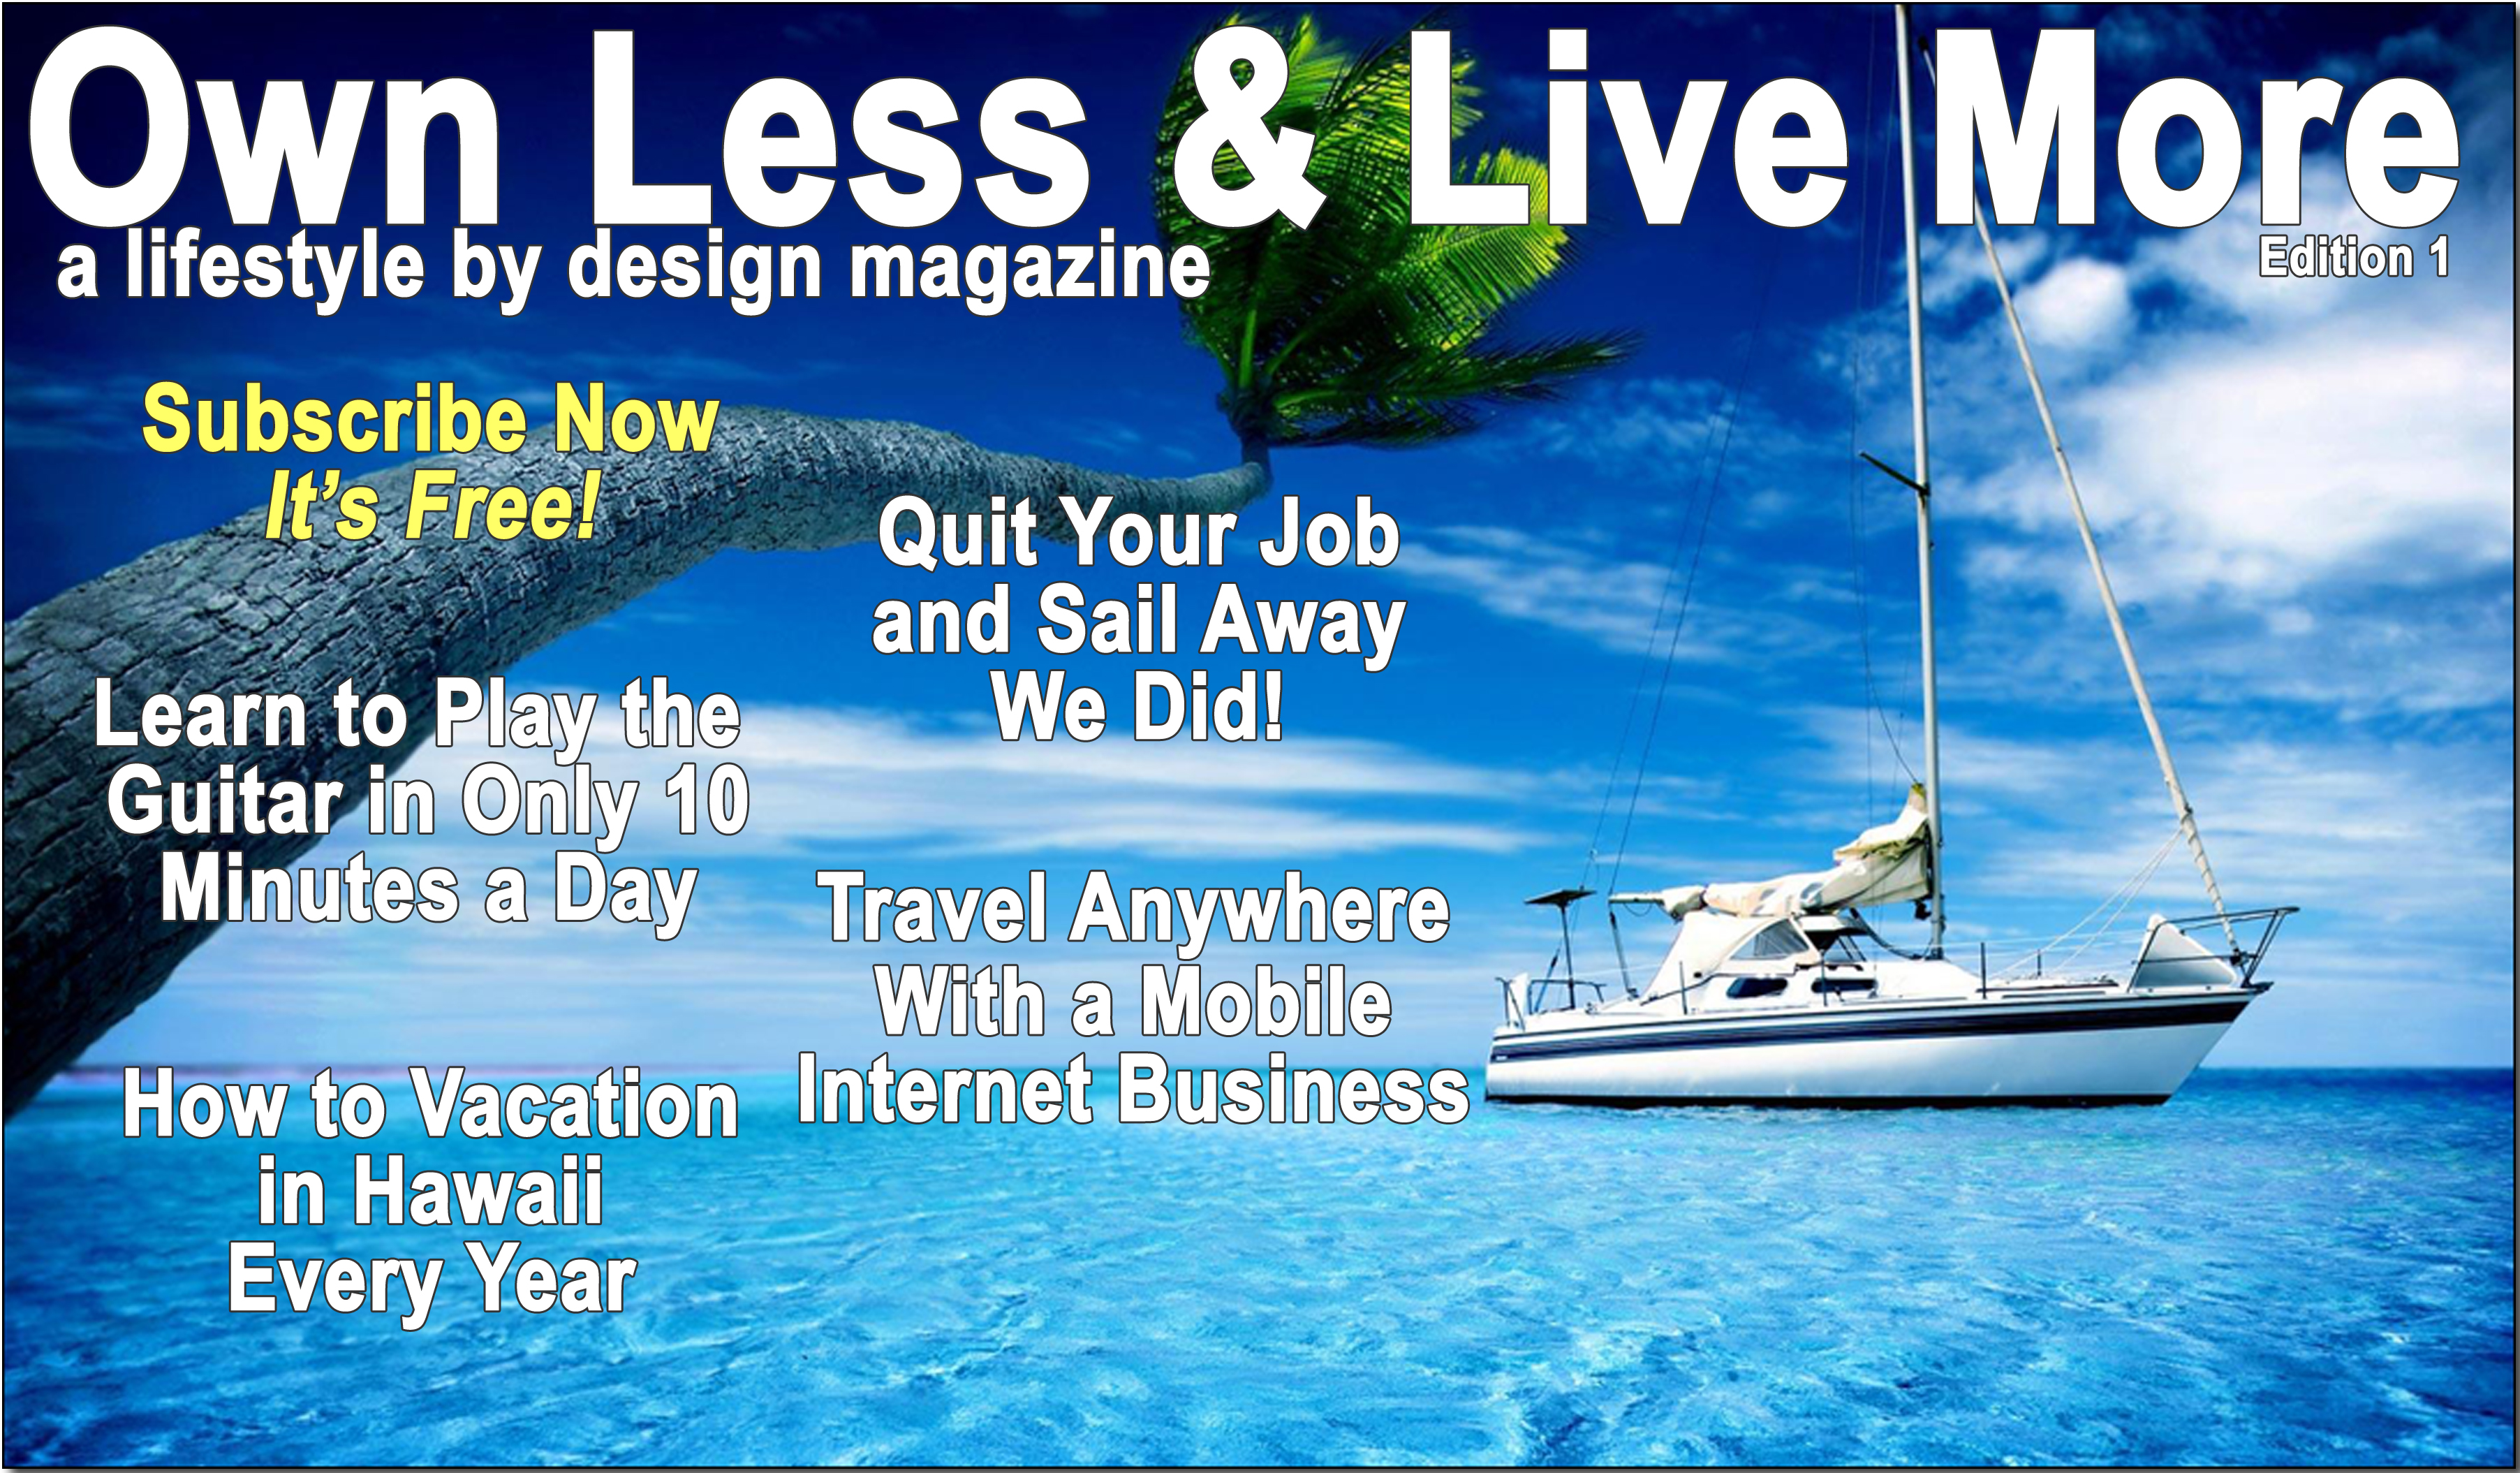 Own Less And Live More - Escape the 9 to 5